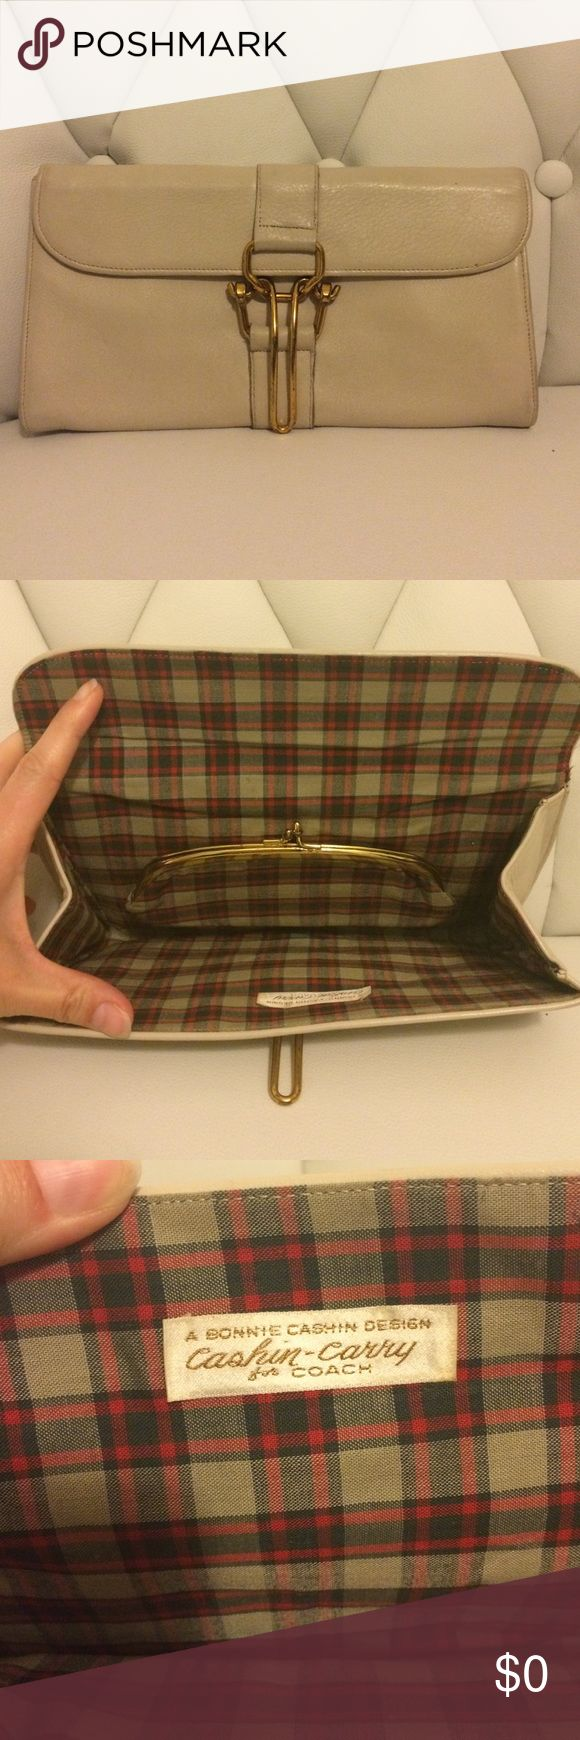 Vintage Bonnie Cashin Carry for Coach Clutch Tbd Bonnie Cashin Carry Coach Bags Clutches & Wristlets